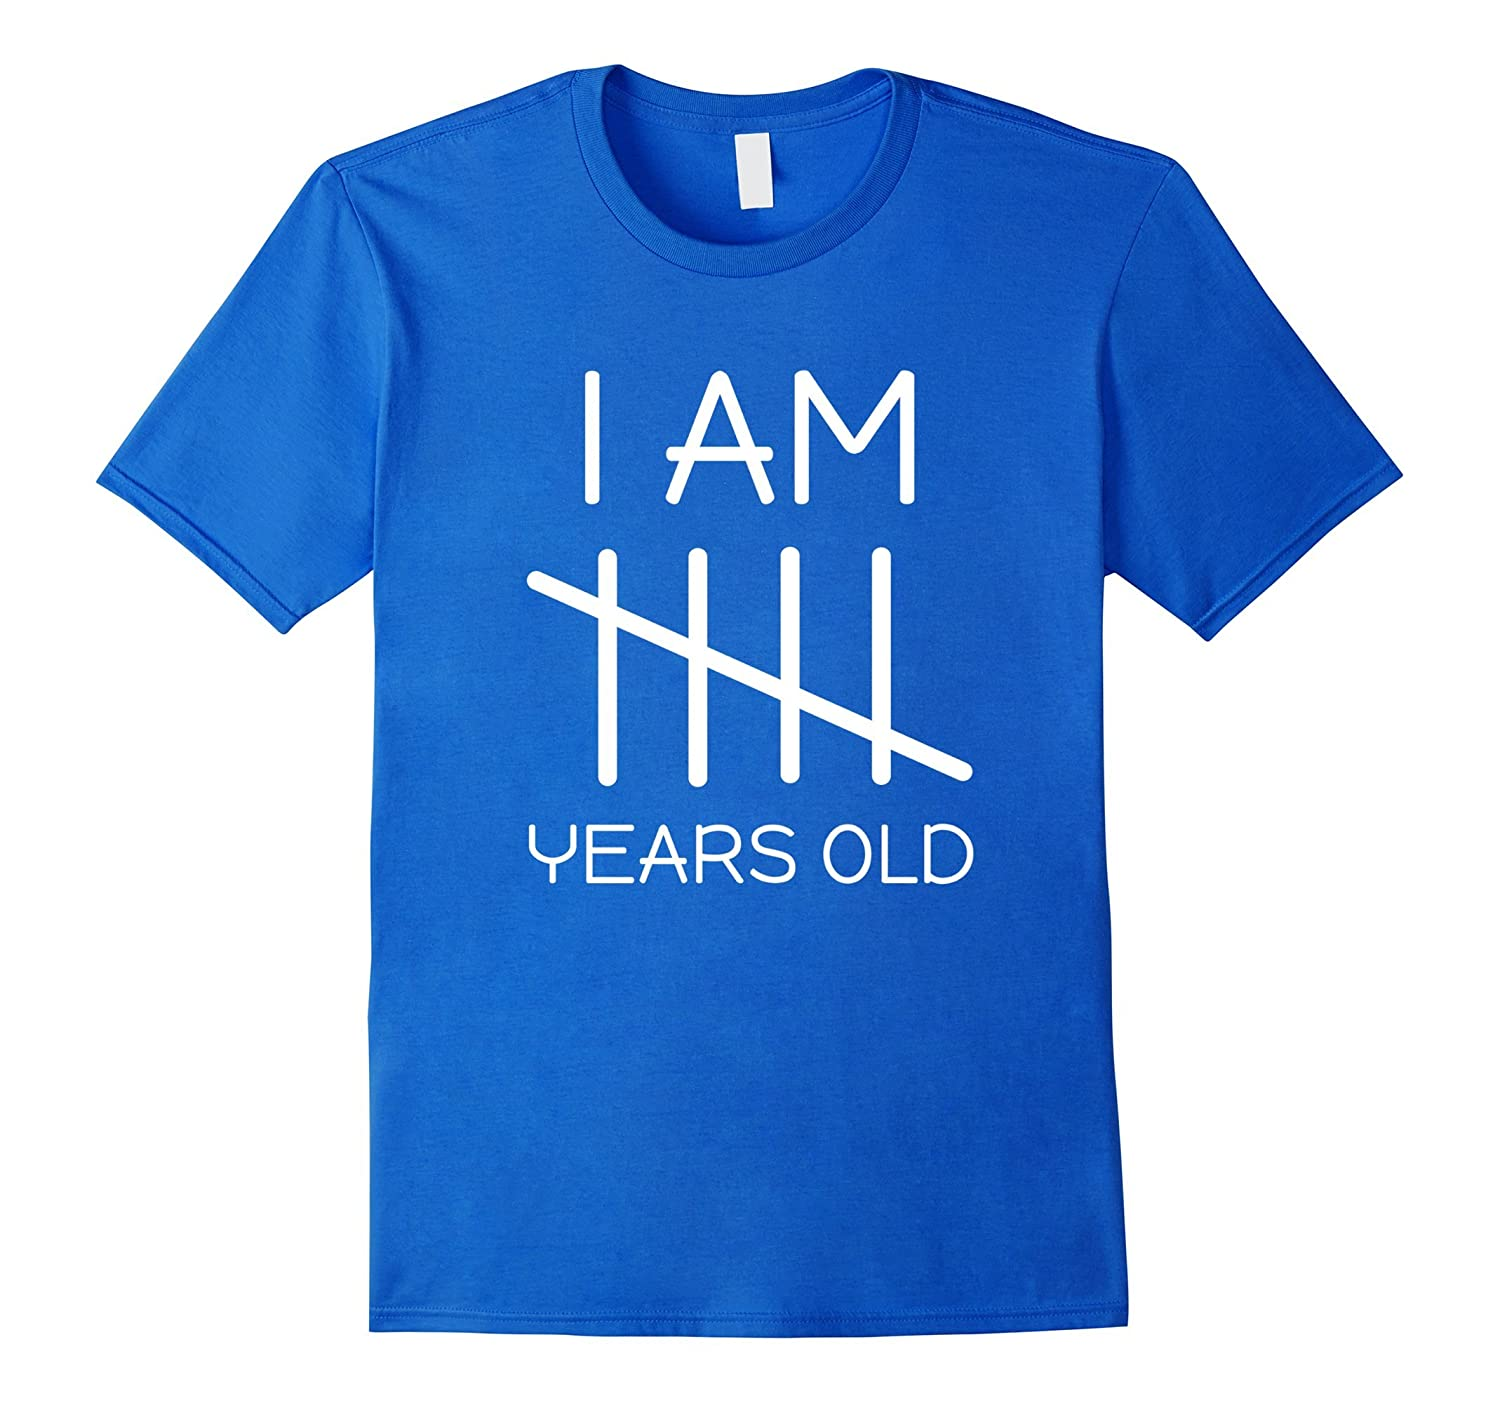 I Am 5 Years Old Tally Mark Funny Cute Birthday T Shirt 5th CL